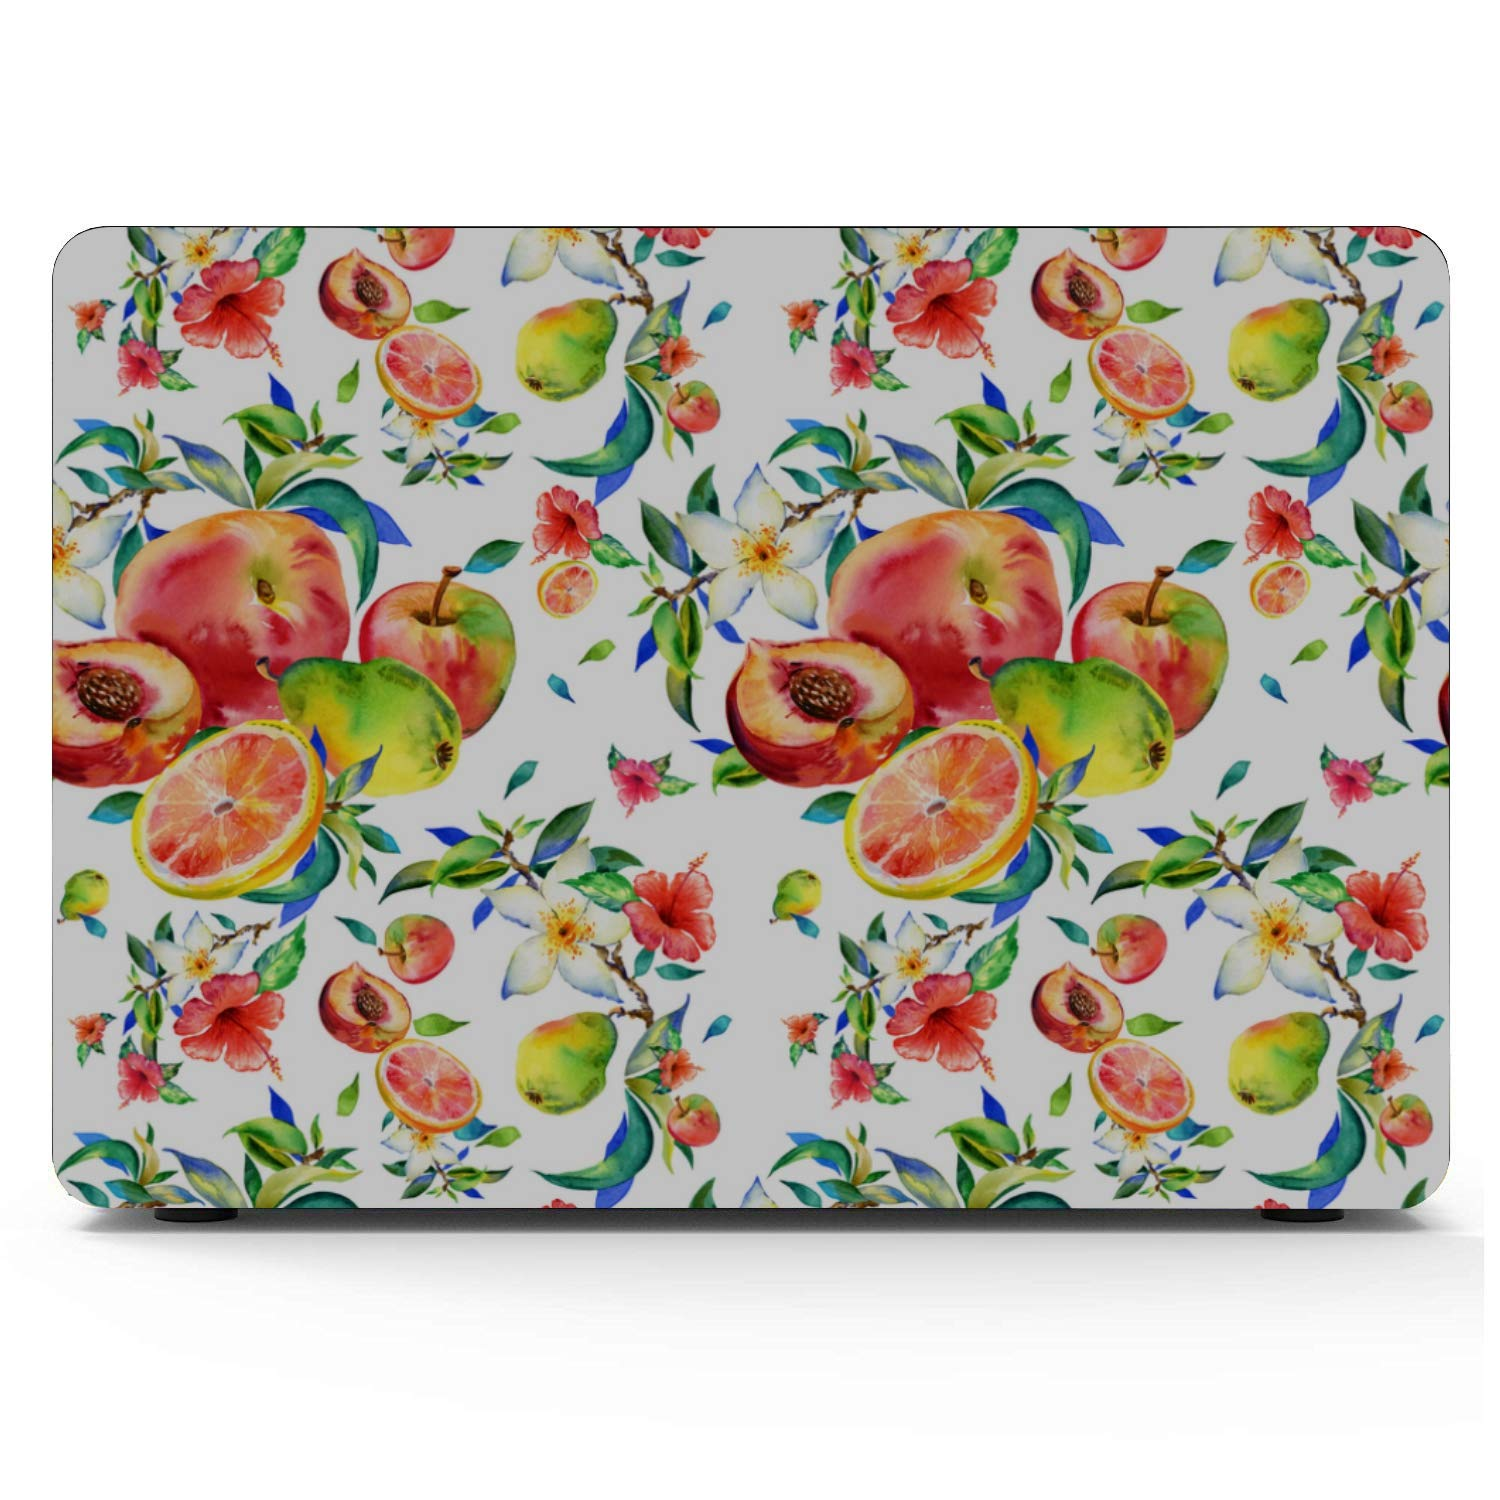 13inch MacBook Pro Case Summer Fruit Grapefruit Green Leaf Plastic Hard Shell Compatible Mac Air 11 Pro 13 15 13inch MacBook Pro Case Protection for MacBook 2016-2019 Version